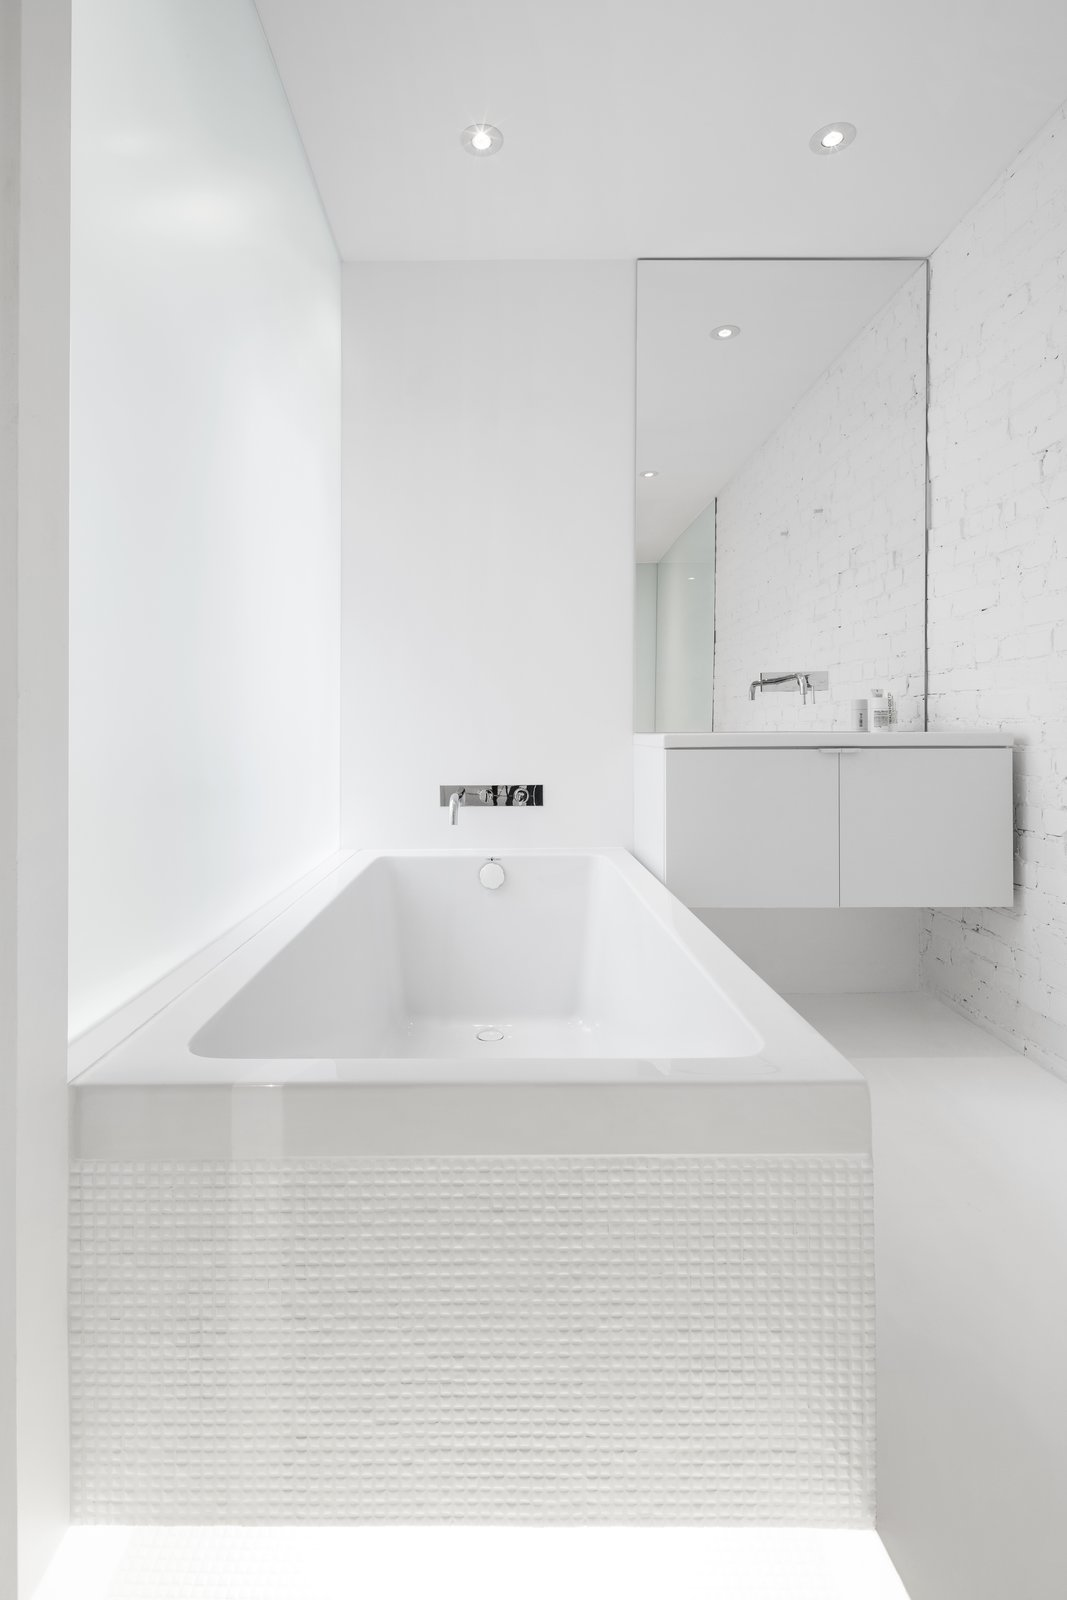 Bath, Soaking, Wall Mount, Recessed, and Drop In An opaque glass wall which extends the length of the tub, allows filtered light into the bath space.  All white elements allow the light to reflect, creating a bright interior.   Best Bath Recessed Drop In Photos from A 1910 Apartment Transforms Into an Open, Radiant Loft